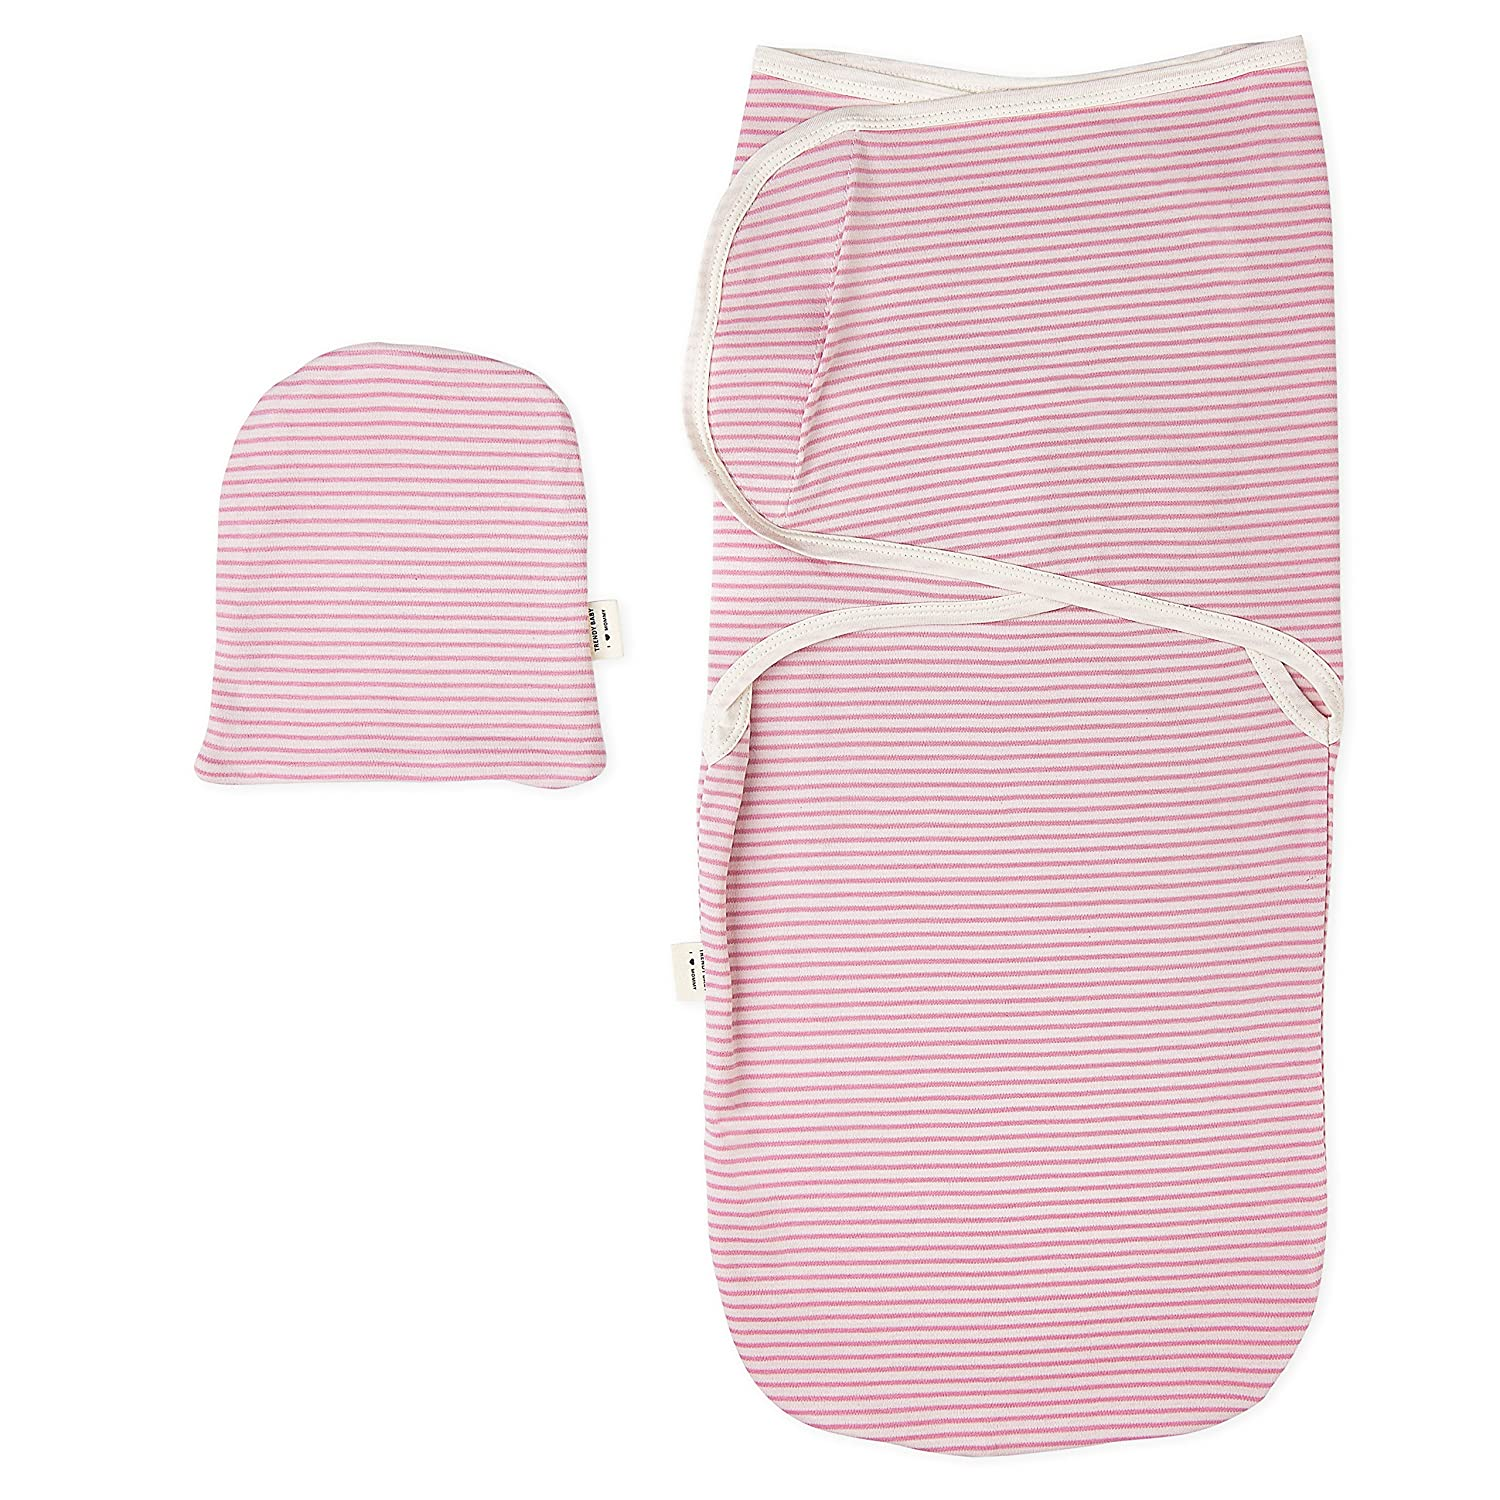 blanket Wrap With Cap Strict New Organic Cotton Newborn Swaddle Blanket Hats Baby Swaddle Set For 0-6 Months Baby Photography Props